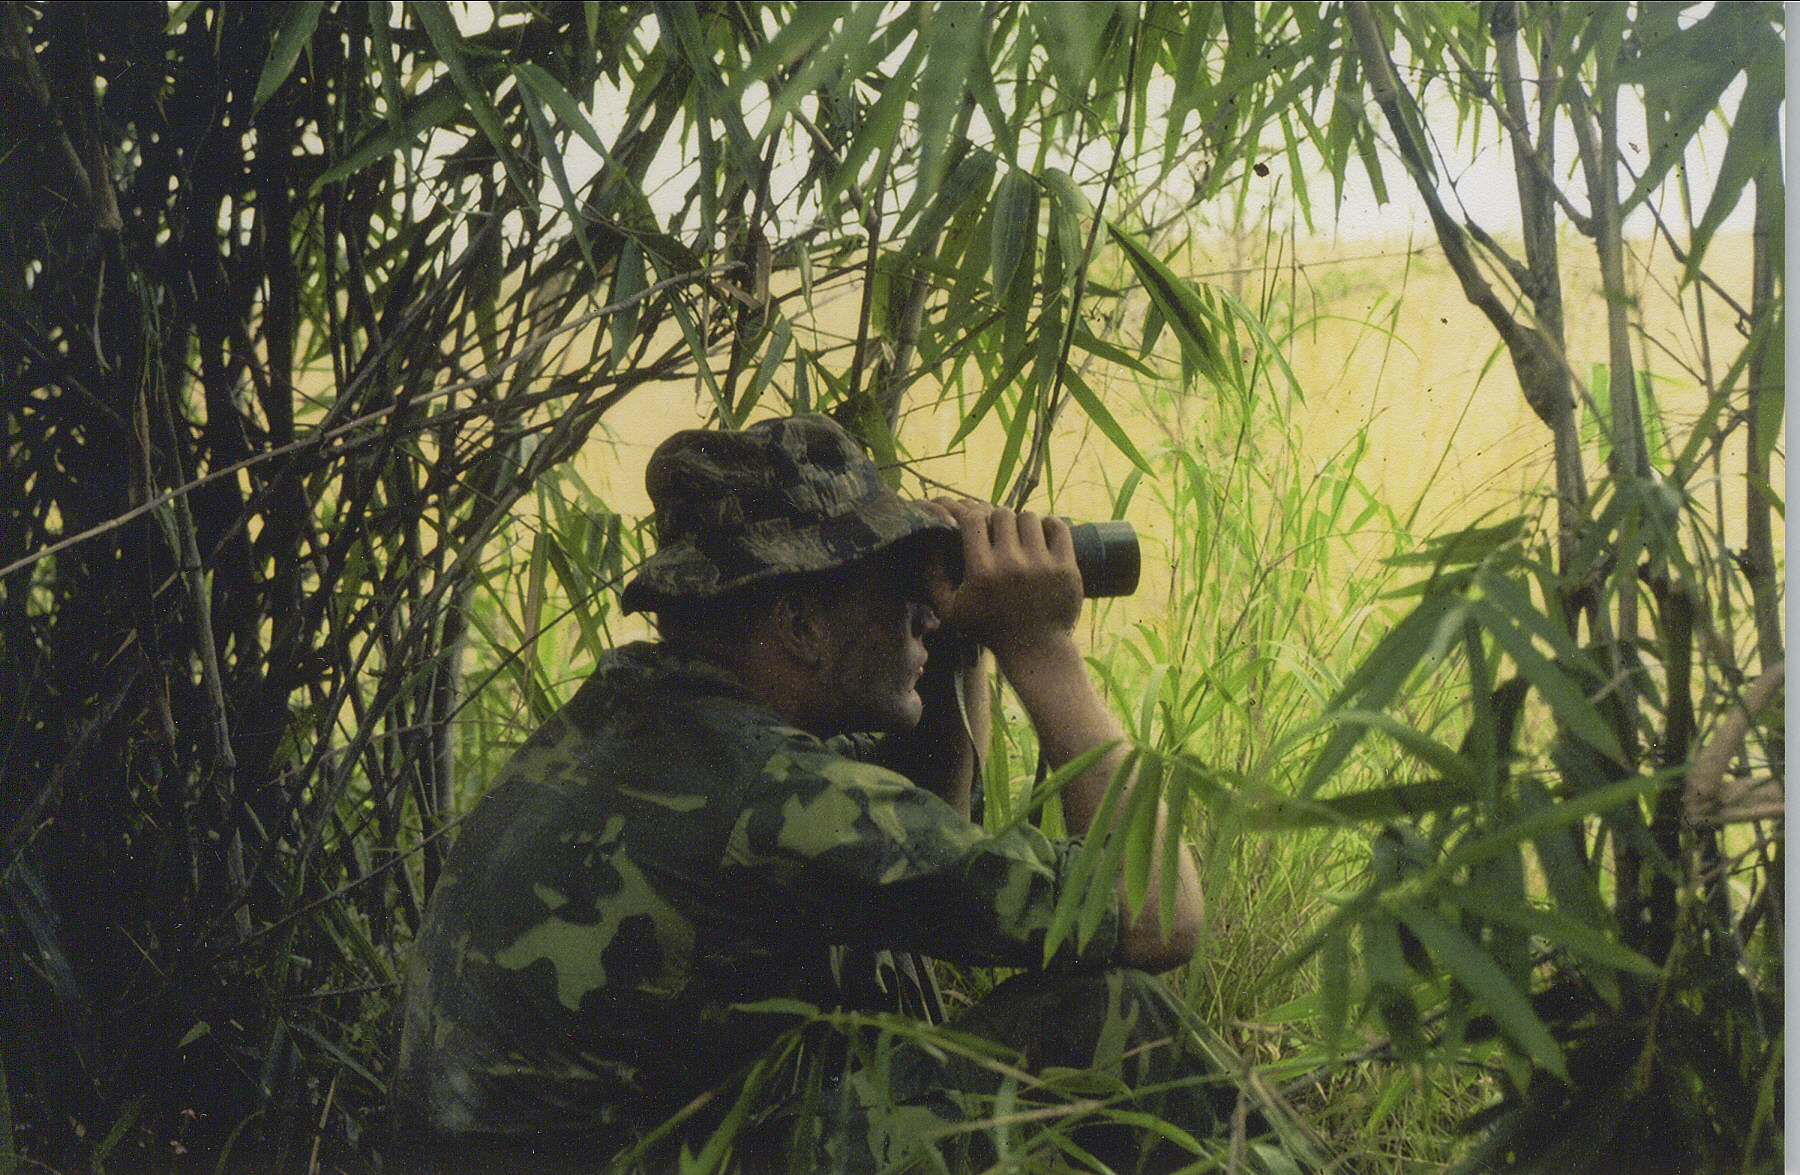 sgt_mark_miller_vietnam_observing_the_nva